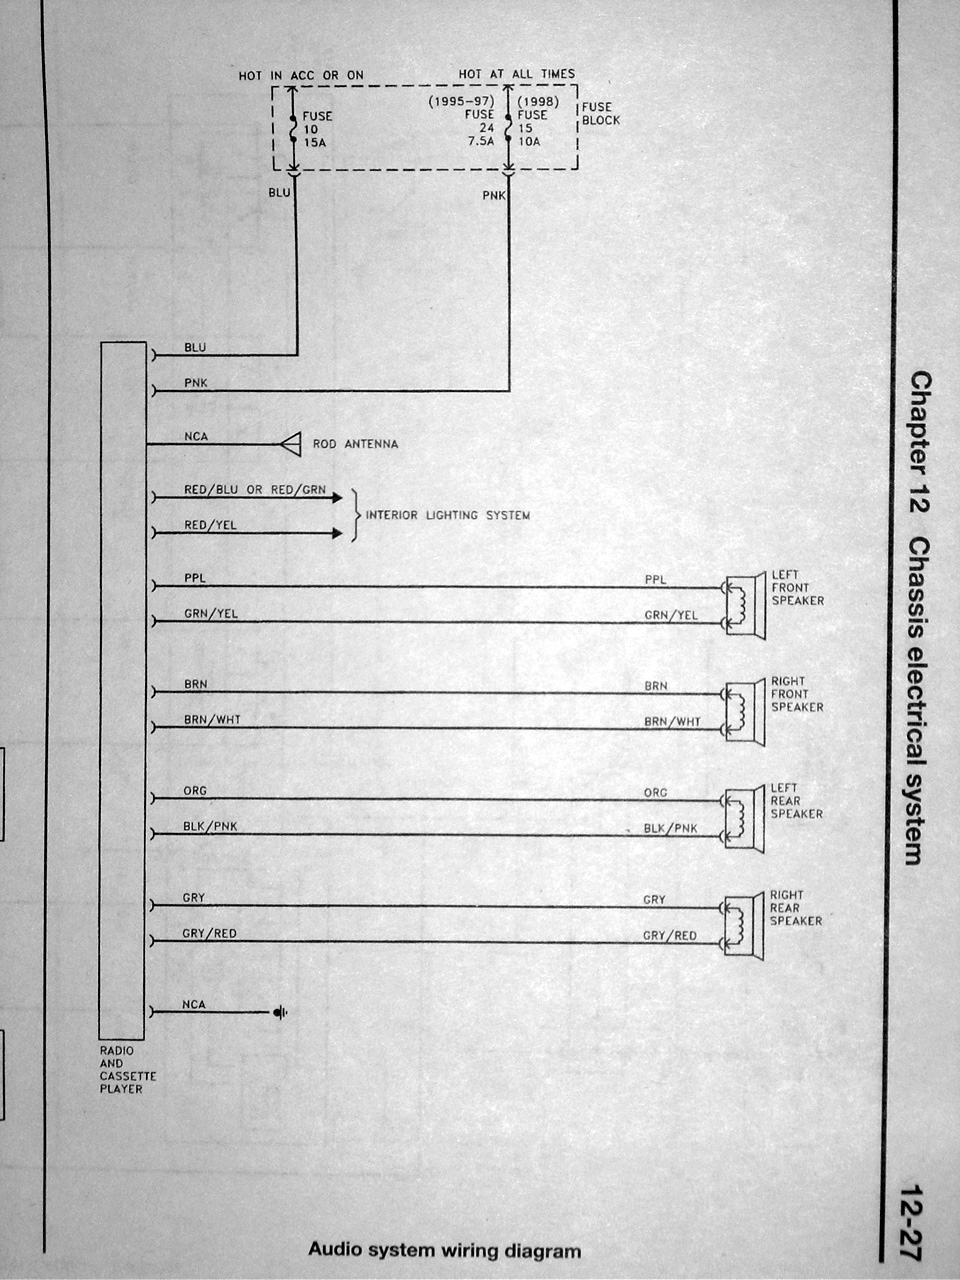 DSC01849 wiring diagram thread *useful info* nissan forum nissan cube radio wiring diagram at panicattacktreatment.co